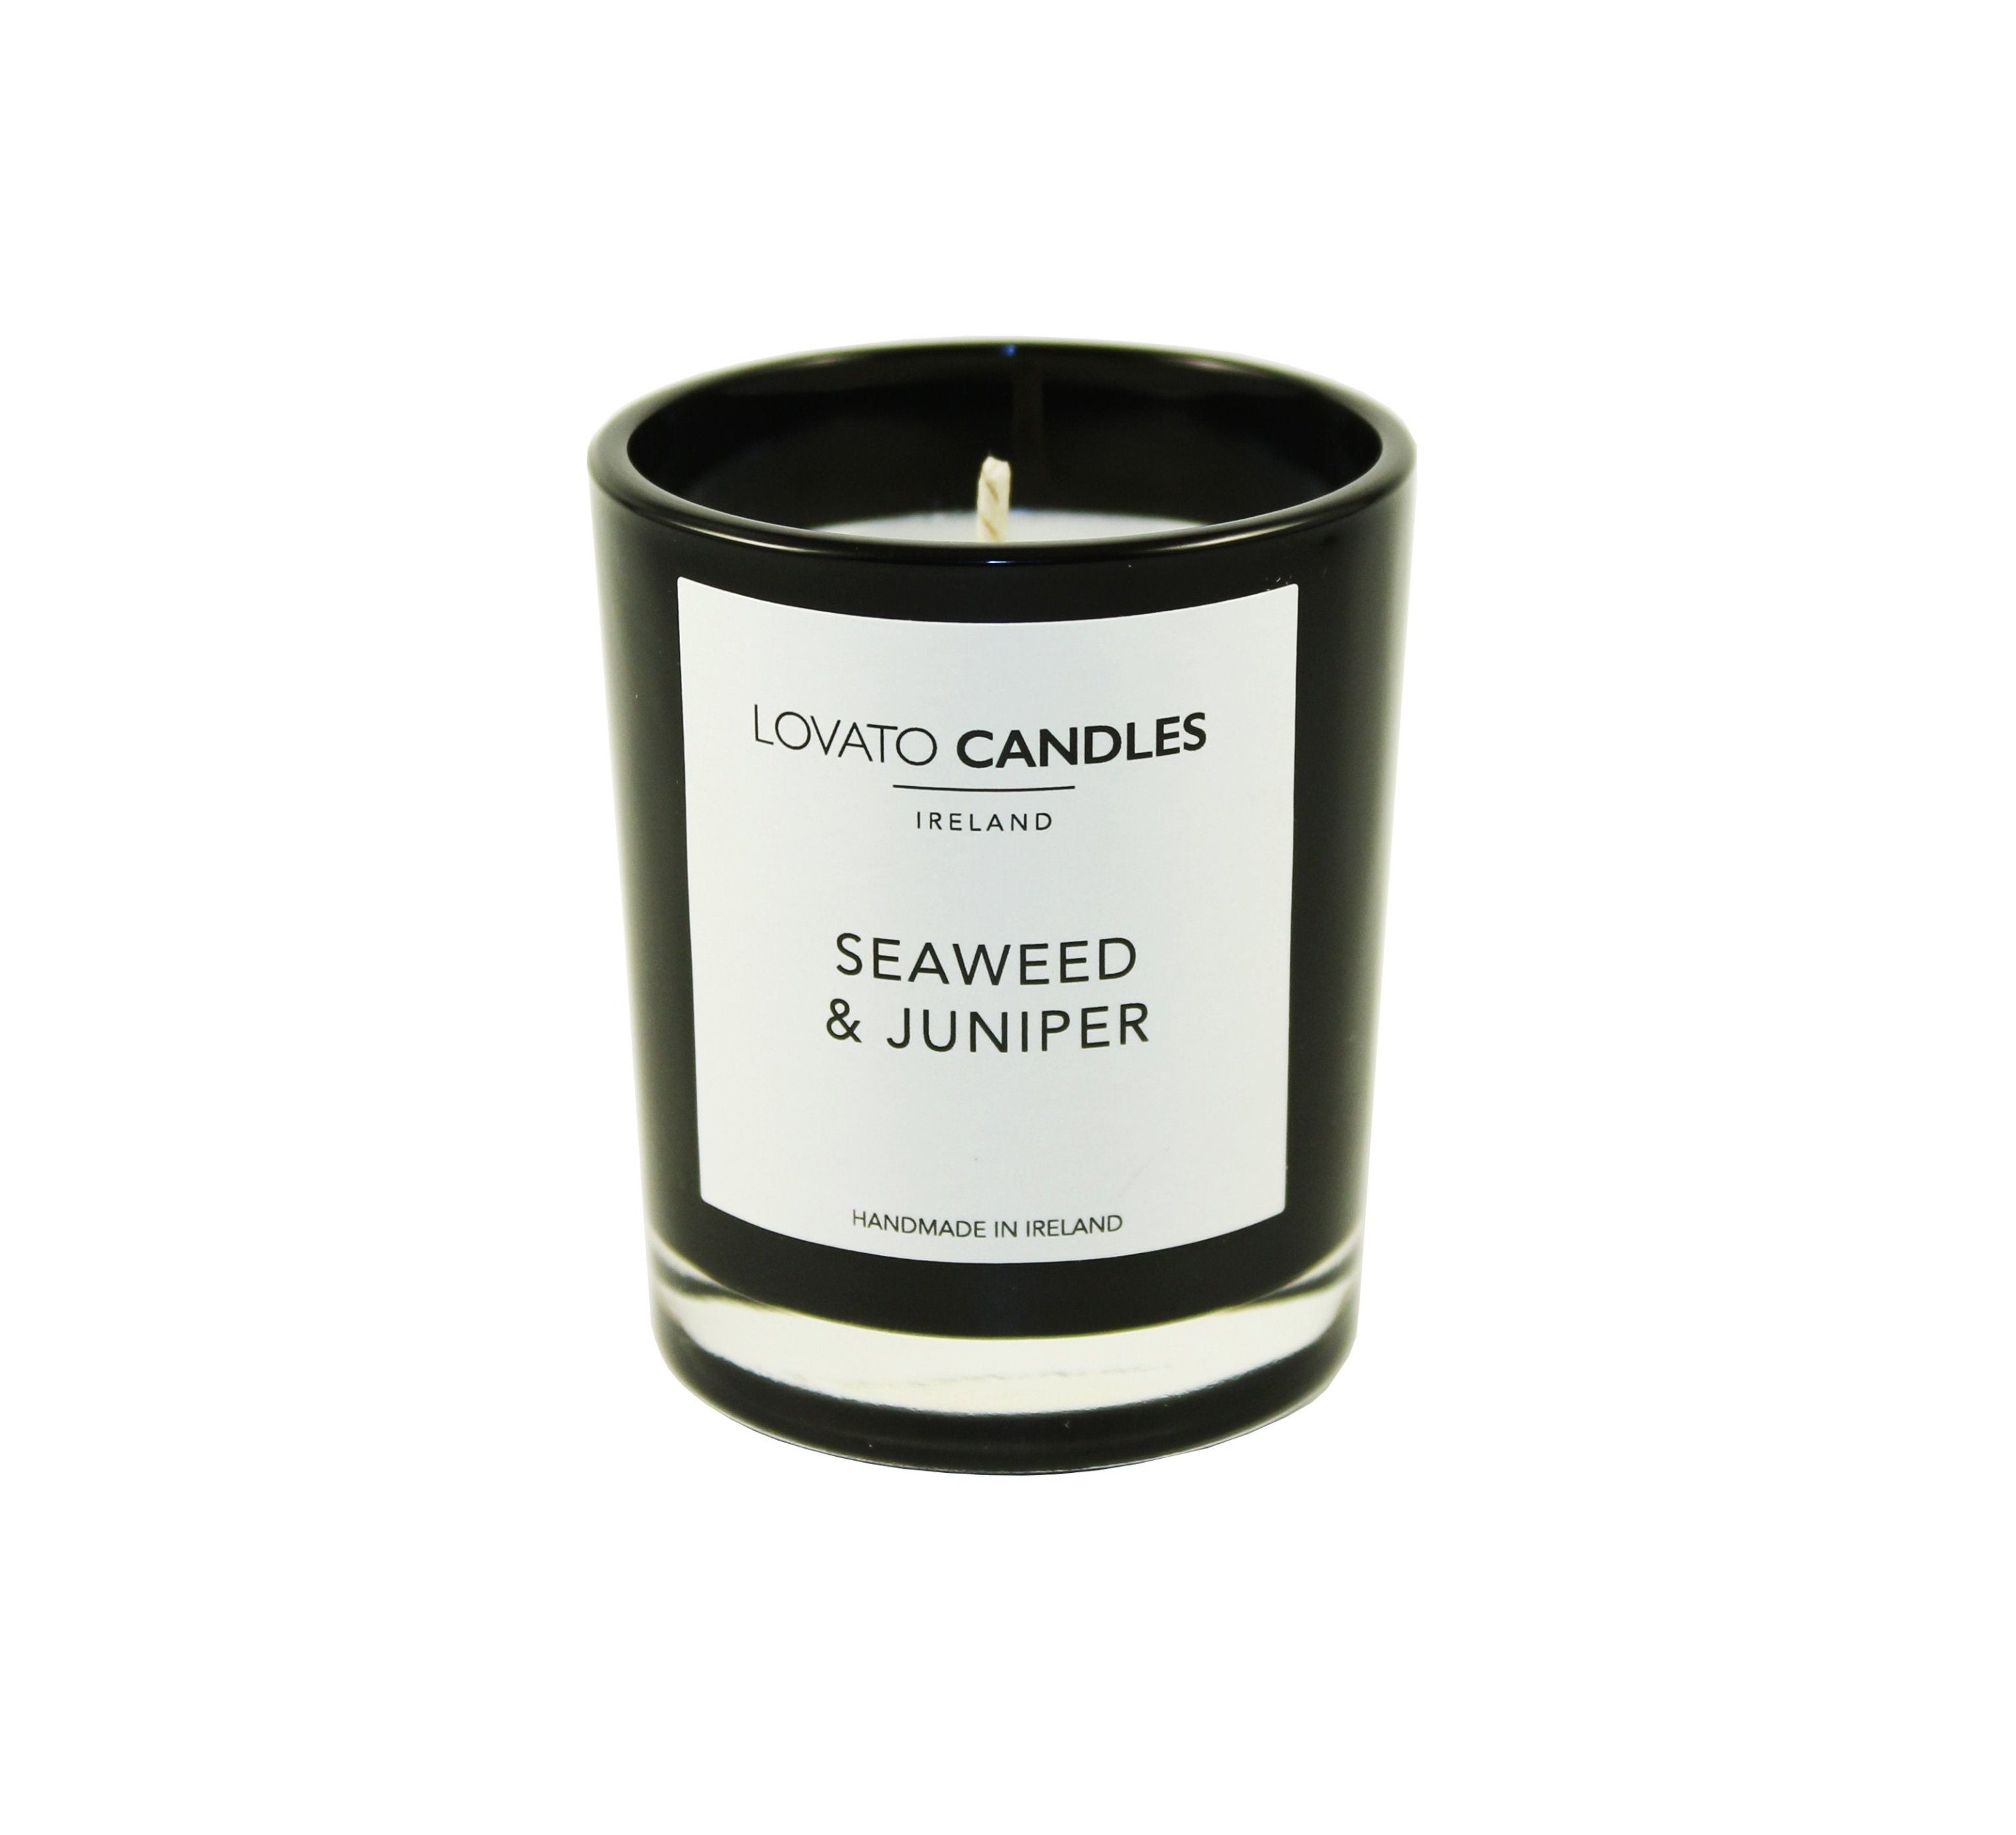 Black Votive Candle - Seaweed & Juniper - Lovato Candles